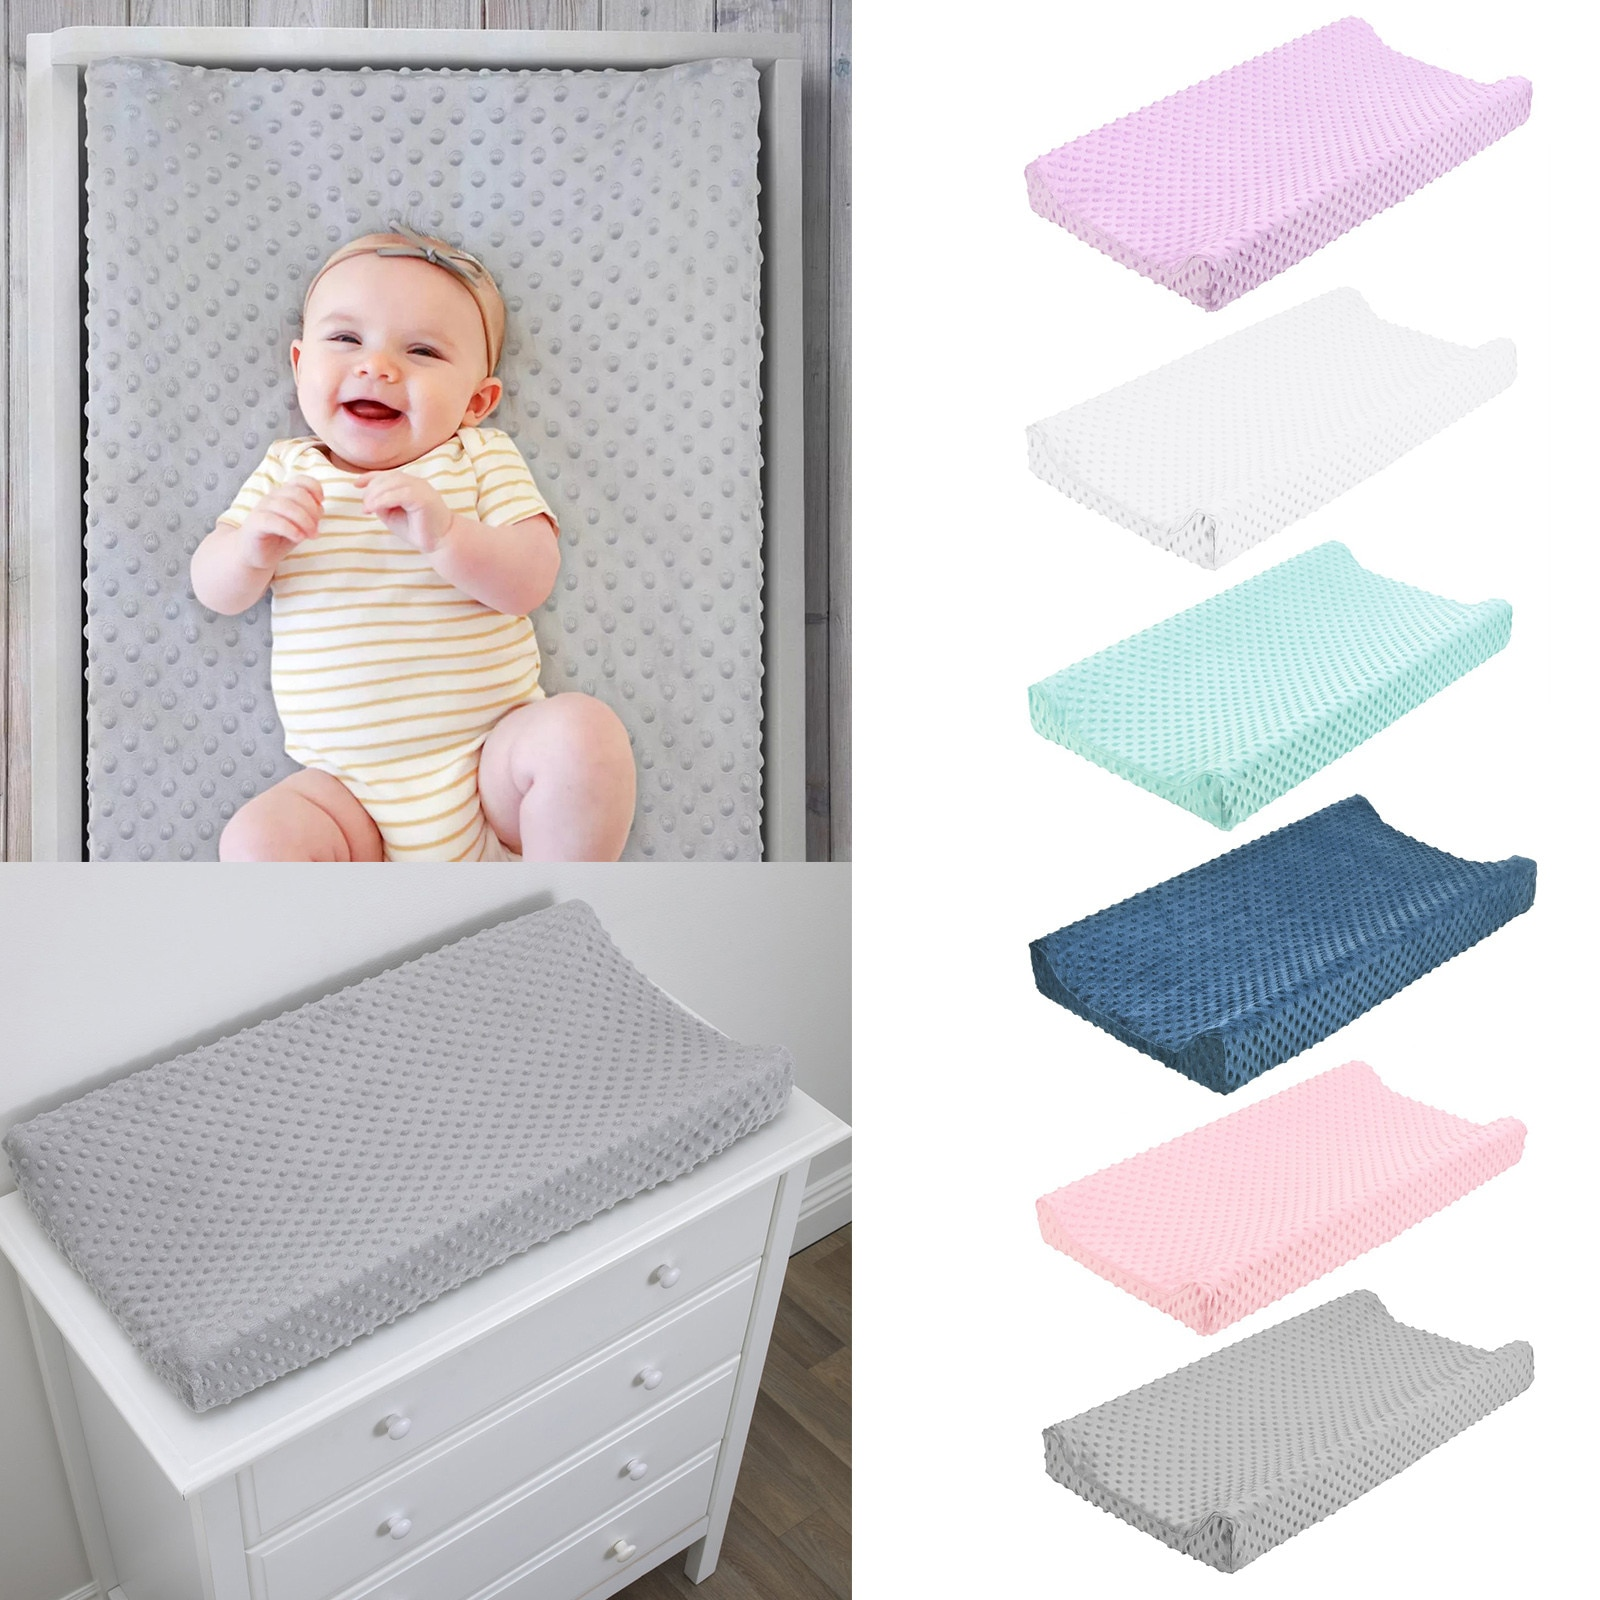 1PC Kids Reusable Diapers Baby Nursery Diaper Changing Pad Cover Changing Mat Cover Solid Children Changing mat